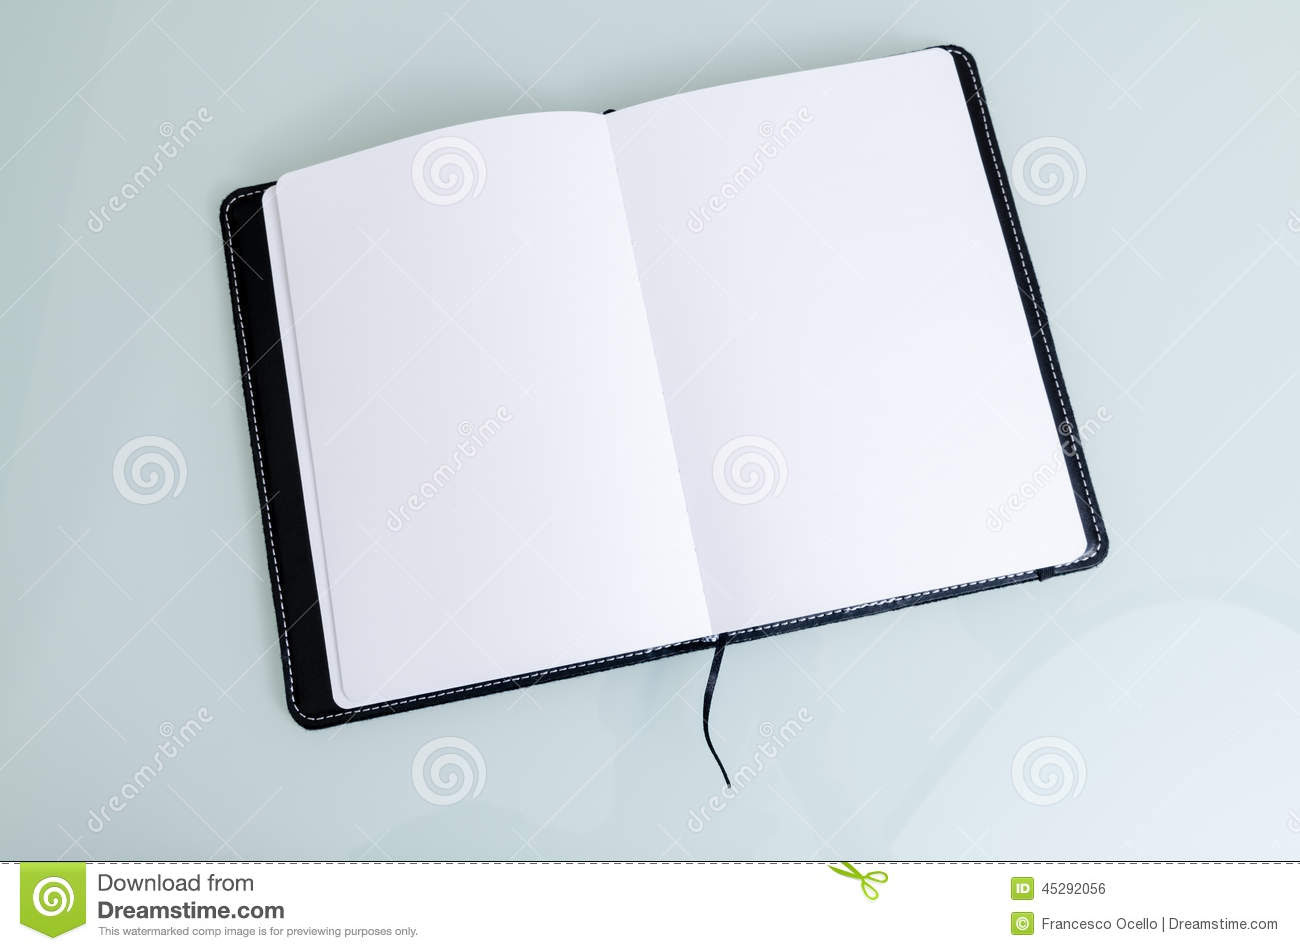 clean open notebook paper black cover horizontal lines white background 45292056